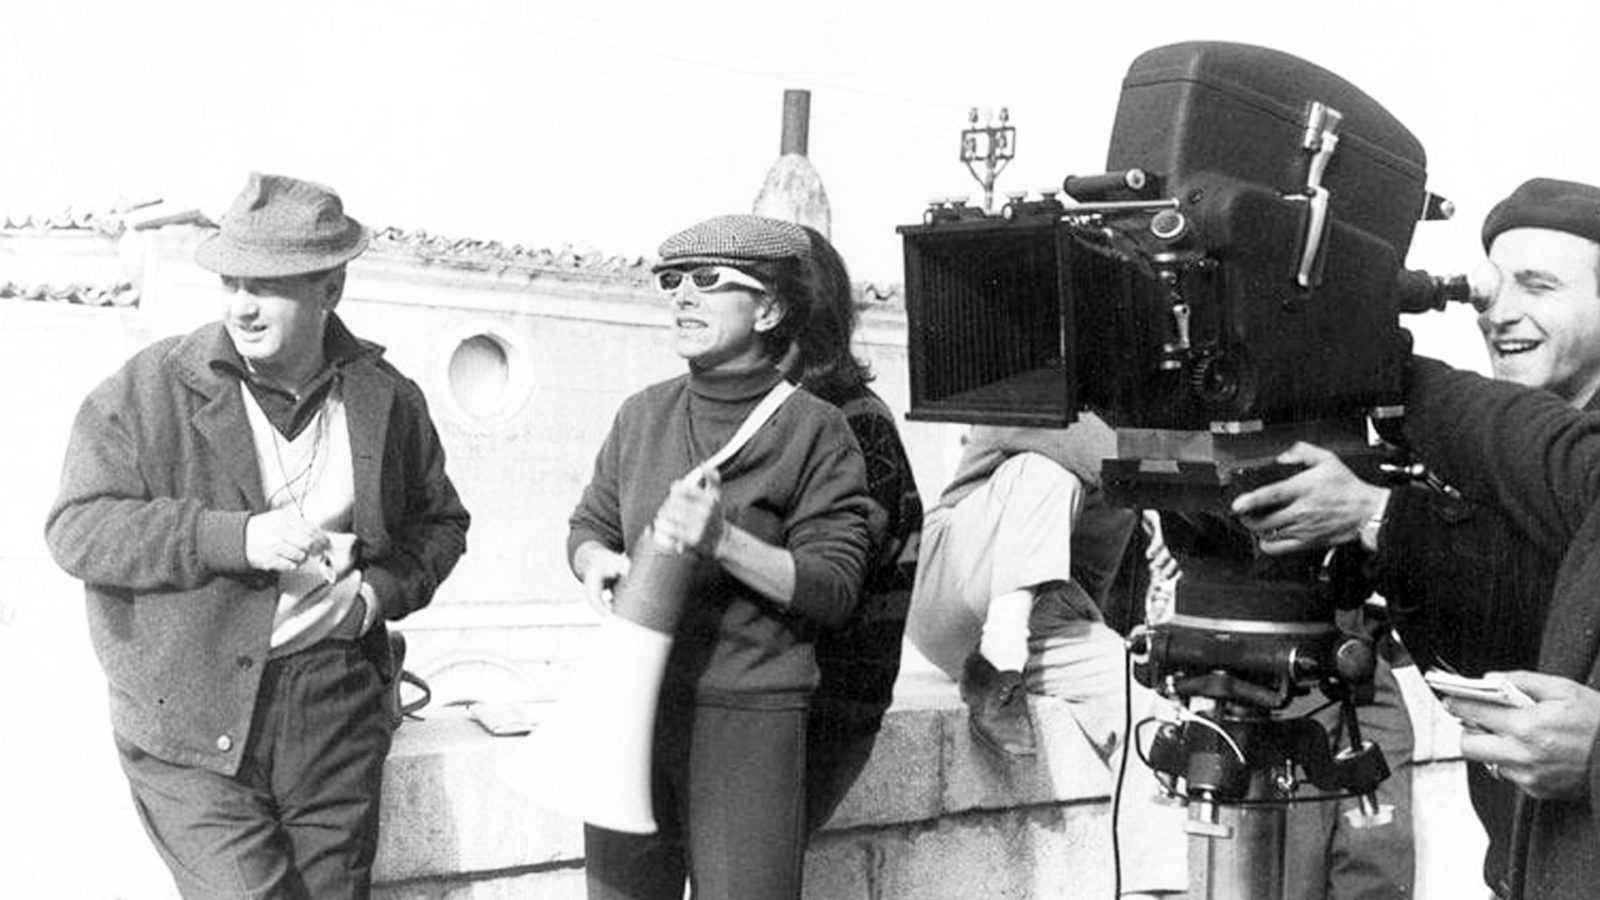 Lina Wertmüller, a lavoro sul set